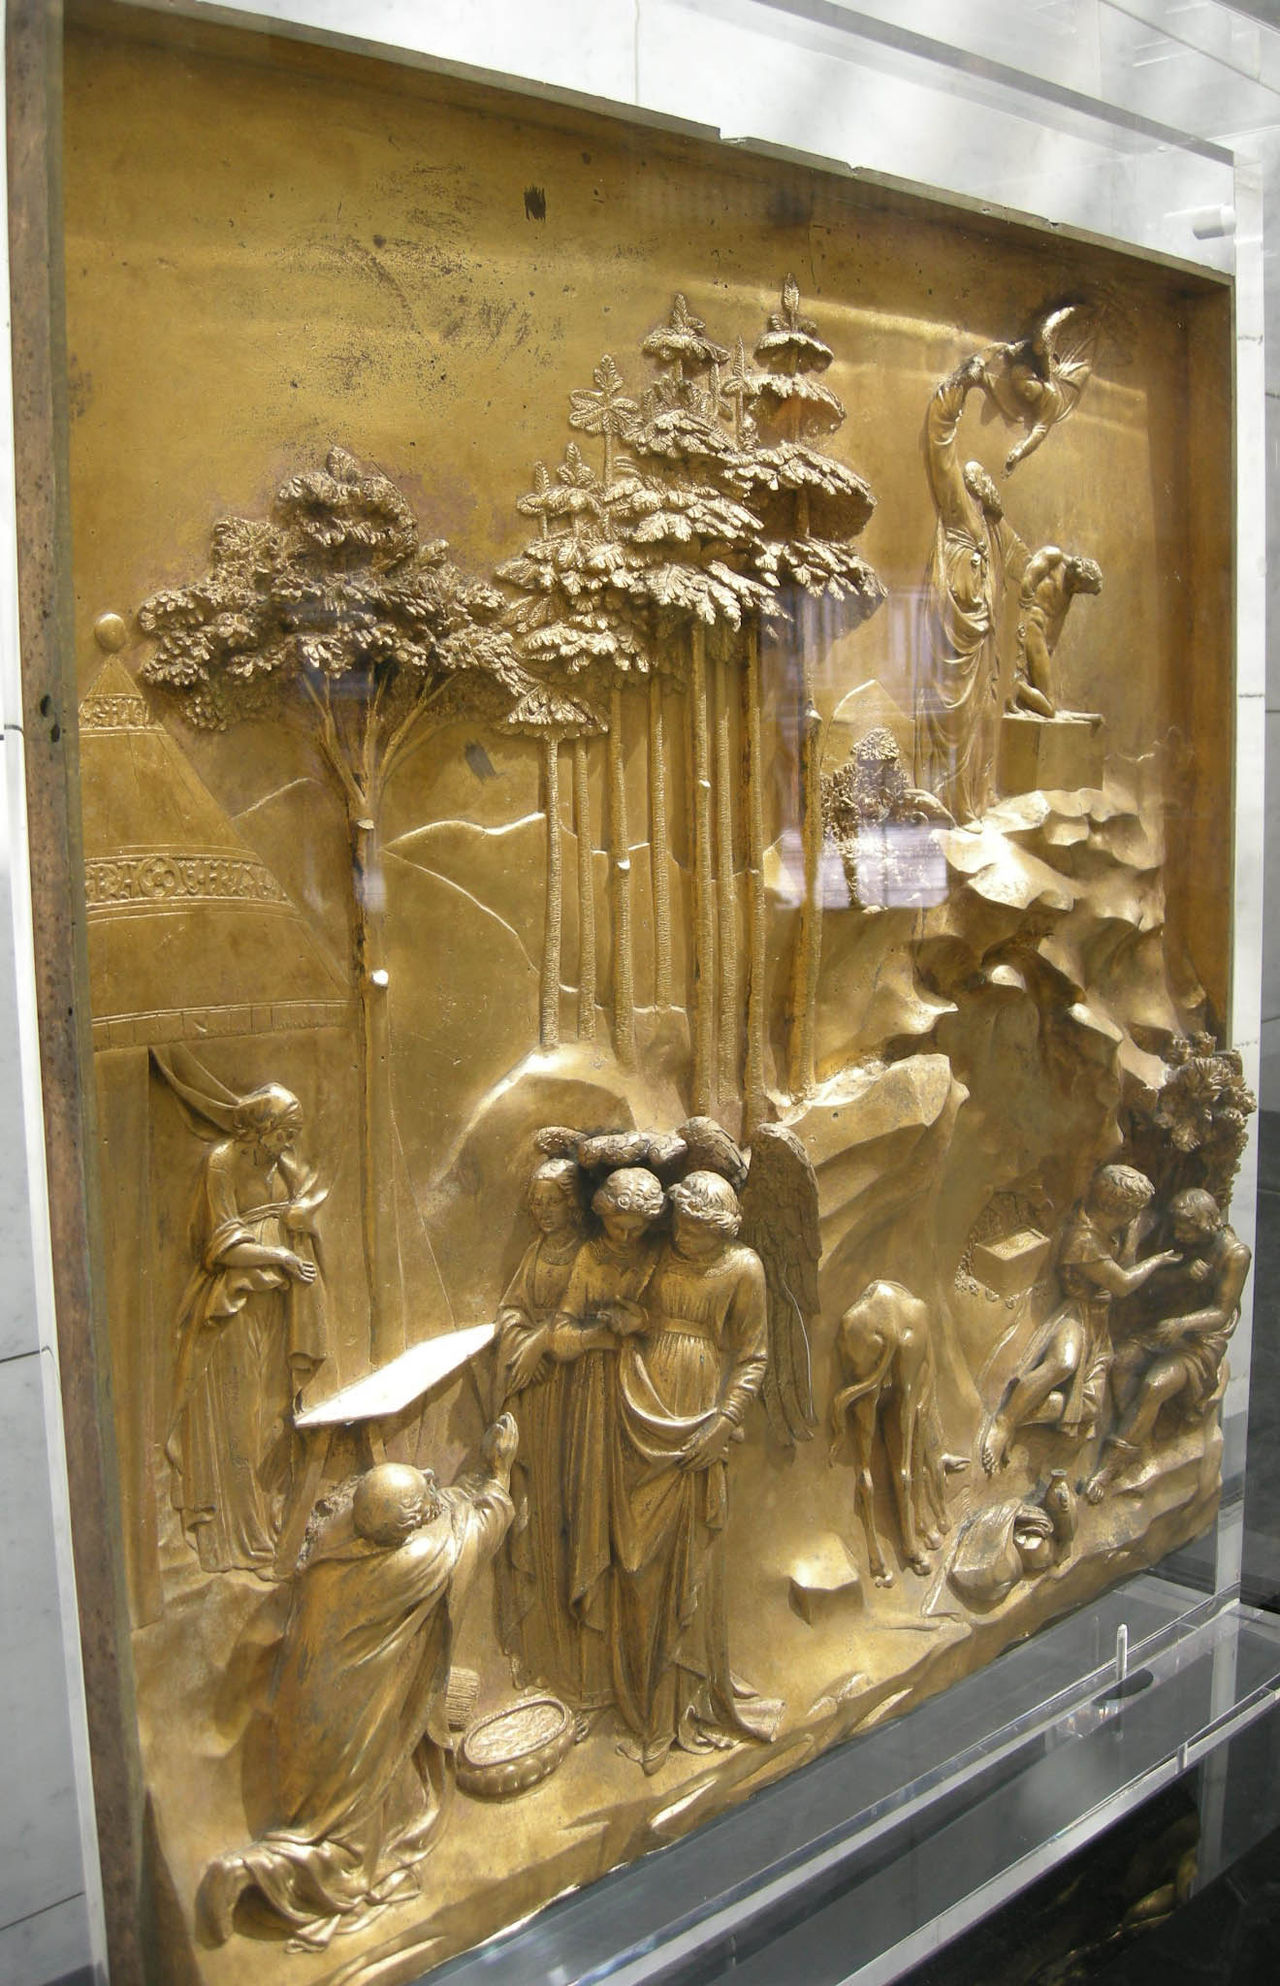 Angel view from  Ghiberti's  bronze doors of the Florence Baptistry.